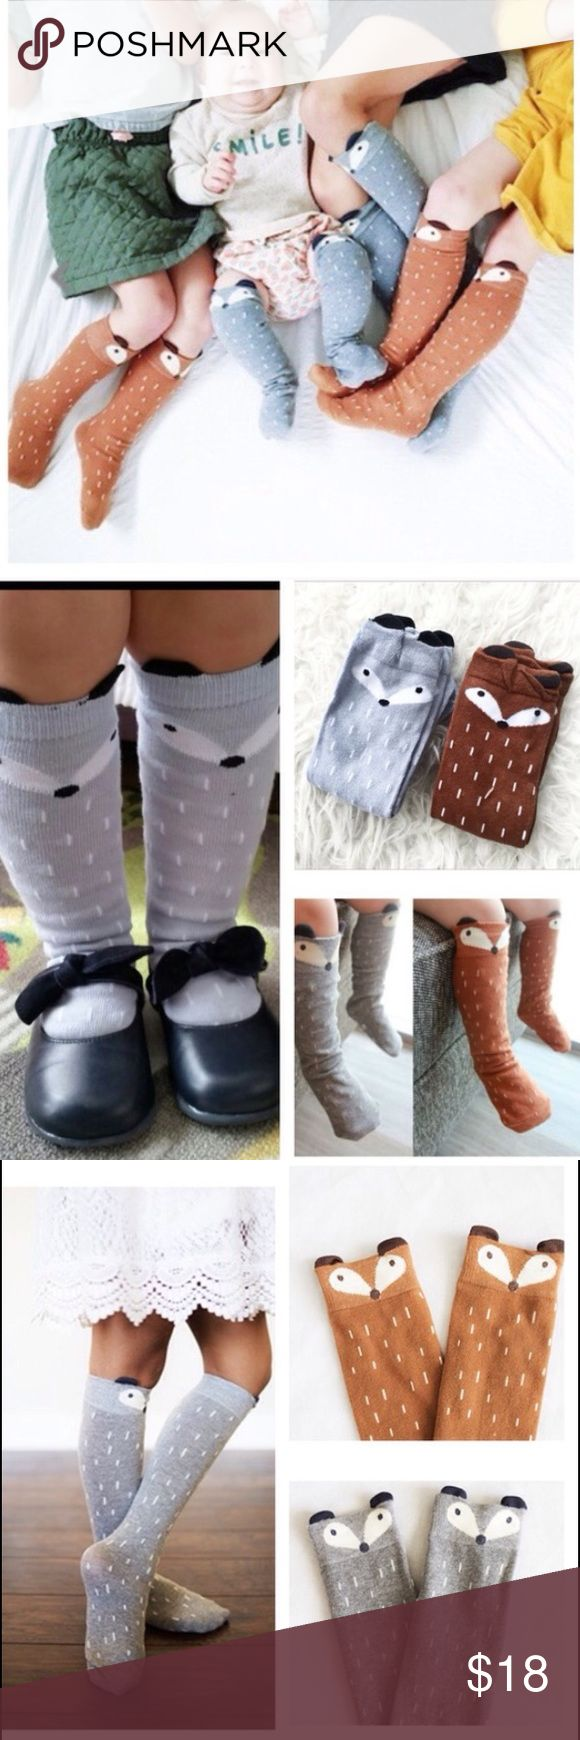 Fox Socks Knee High Baby Toddler Brand new! Includes TWO pair of fox socks, one gray and one brown. Ships same day if ordered by 10:00 CST. Bundle 3 items and save 15% Accessories Socks & Tights